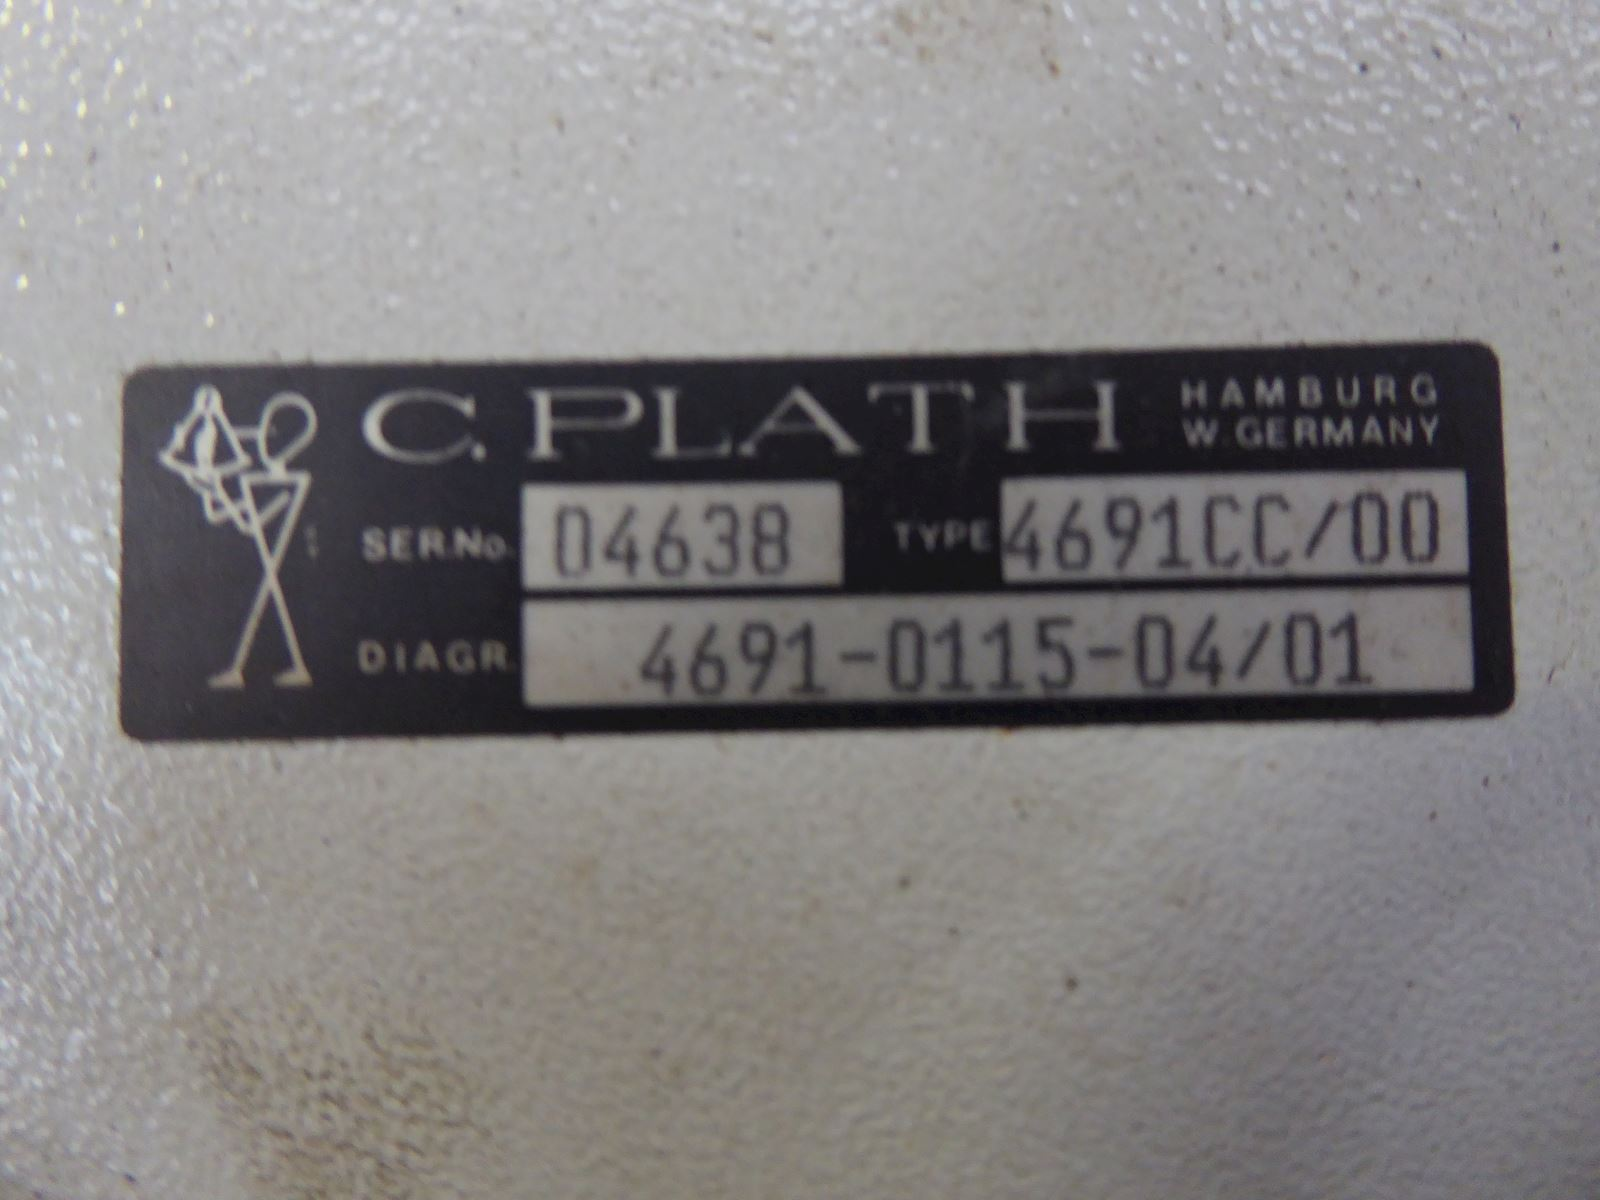 C.Plath Gyro Repeater